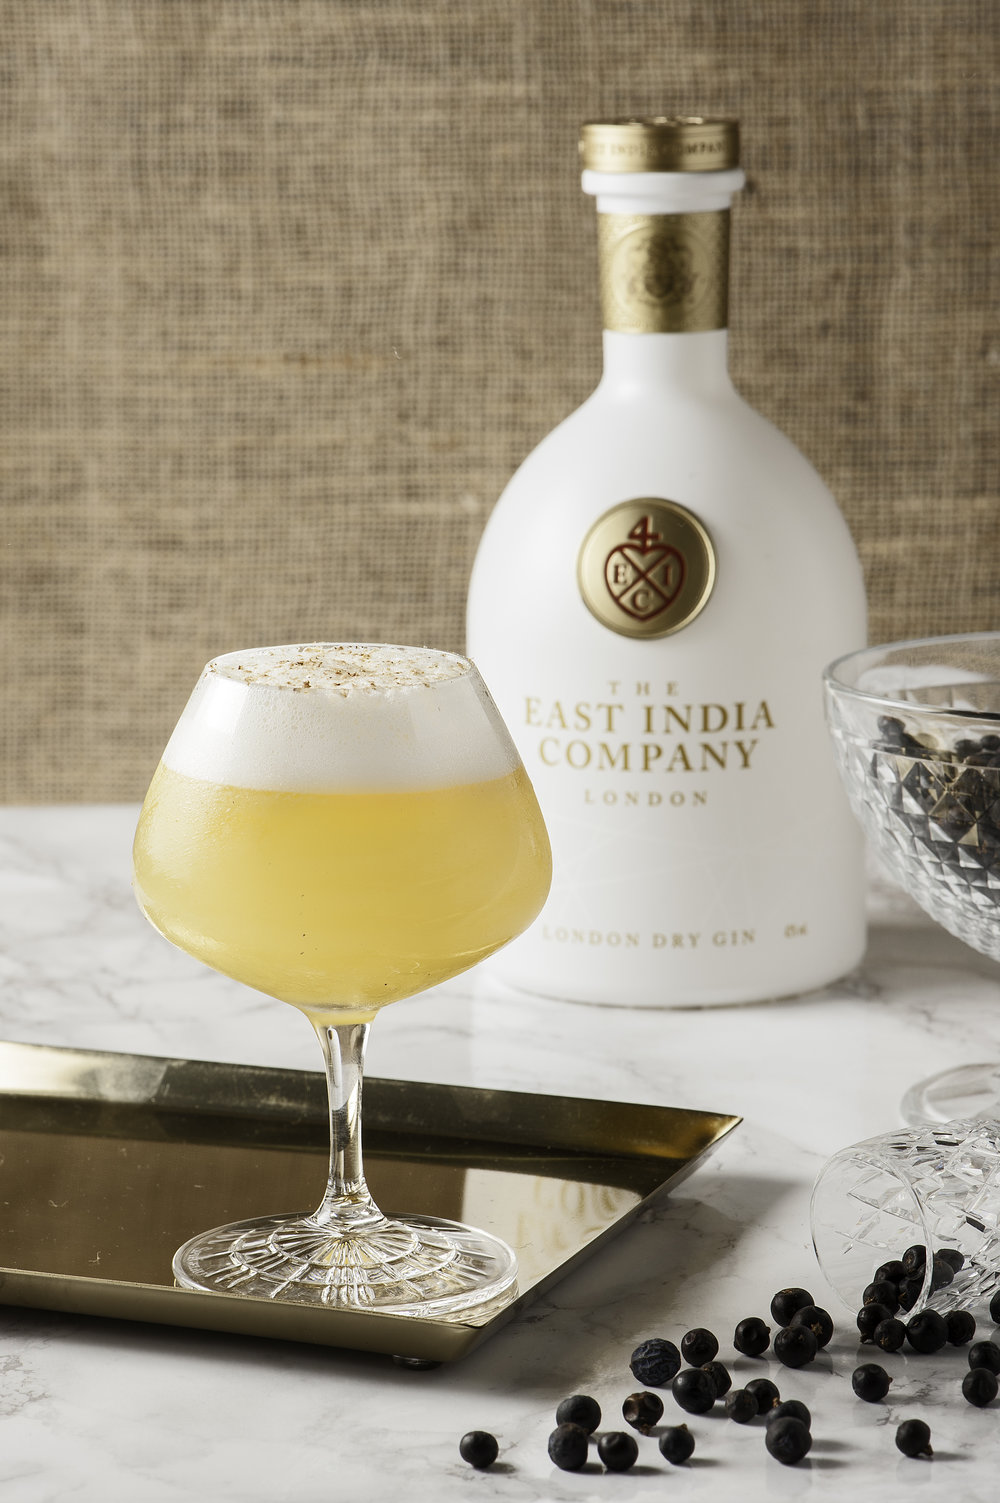 East India Company Gin